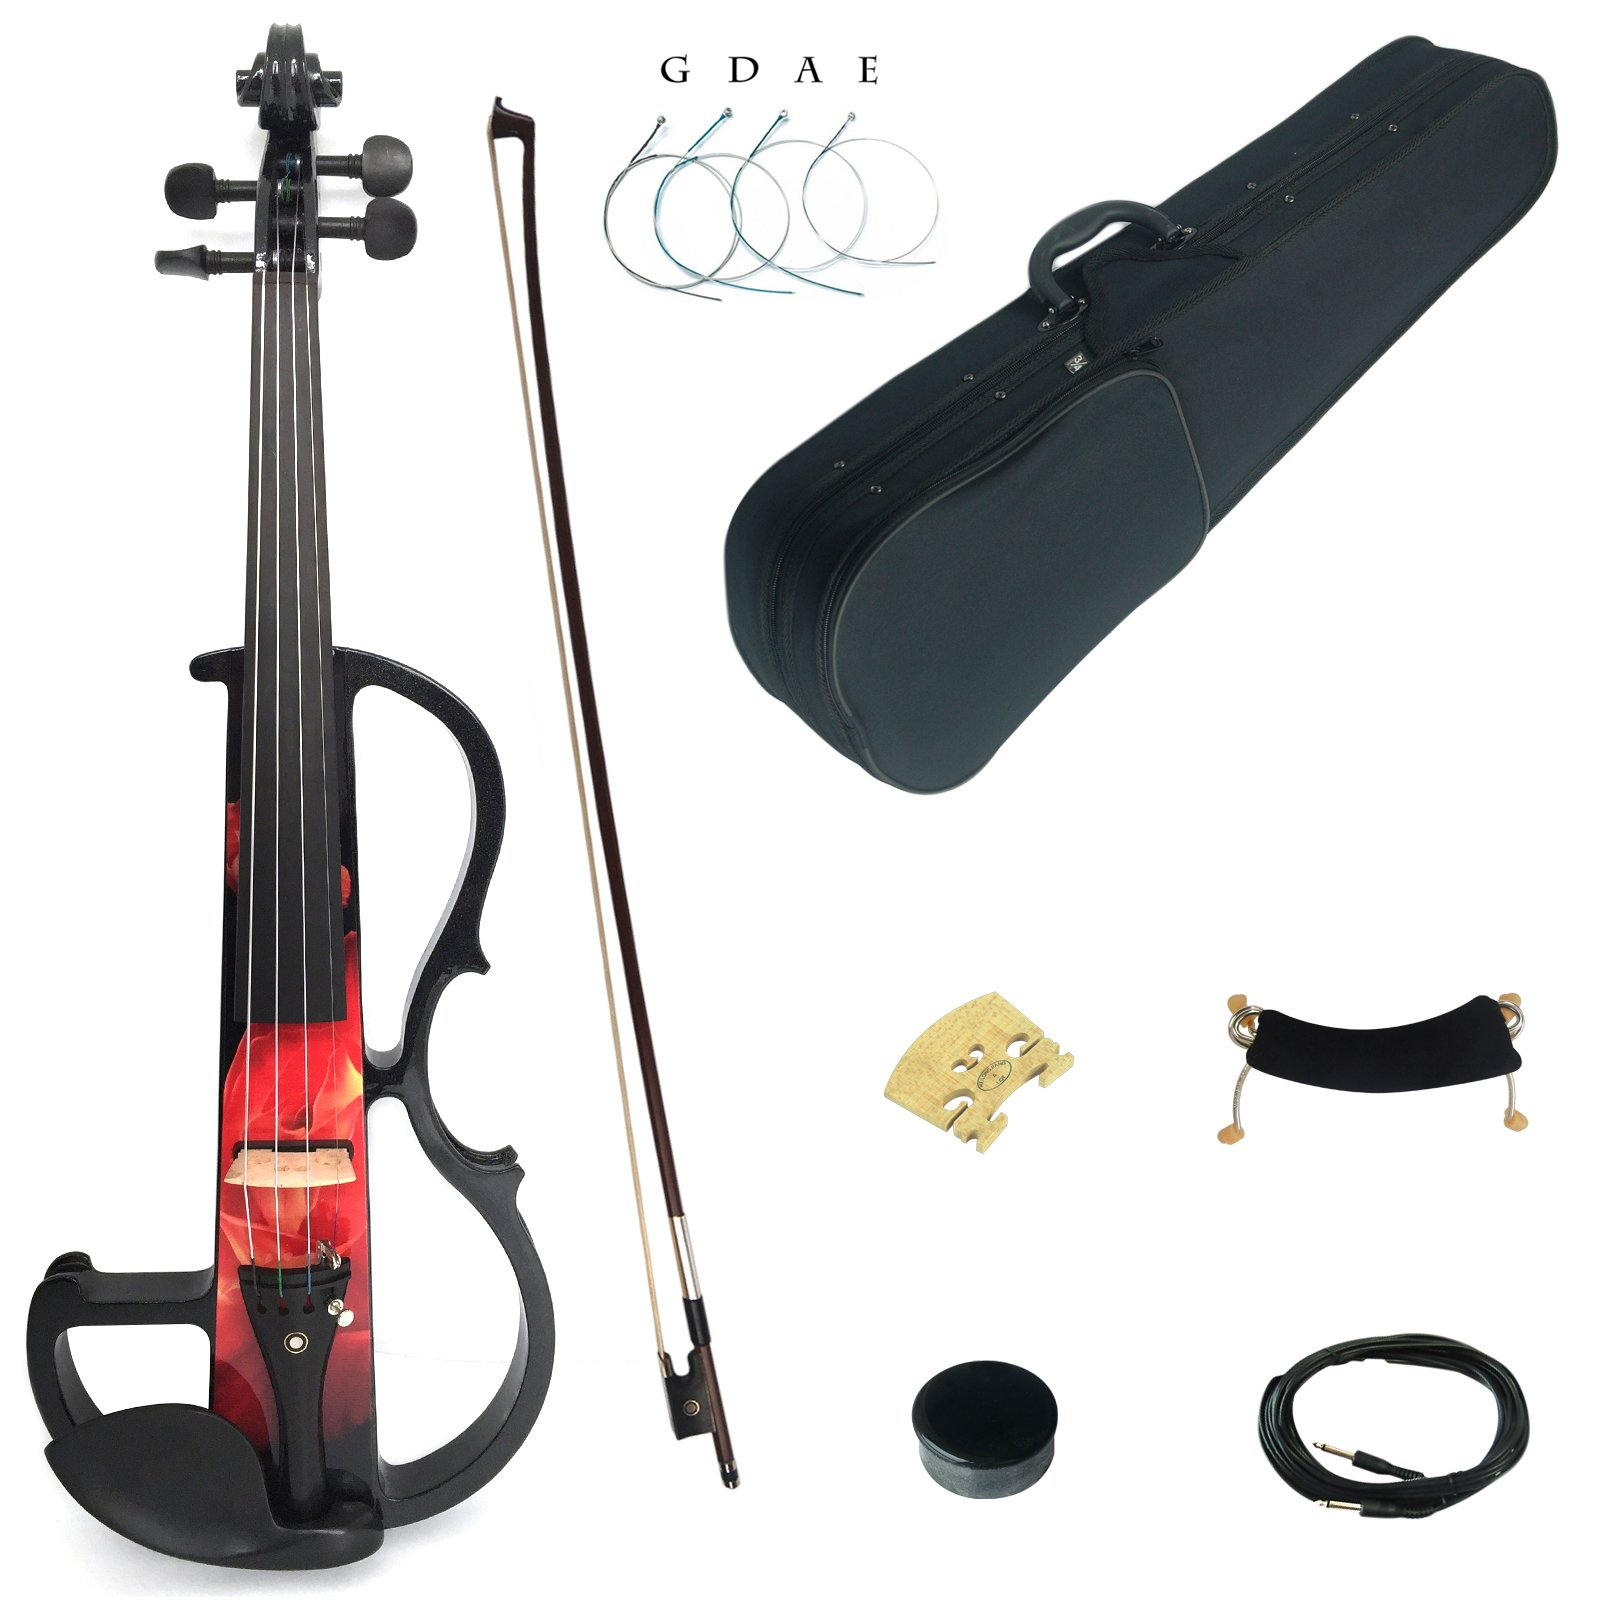 Kinglos 4/4 Red Fire Colored Solid Wood Intermediate-B Electric/Silent Violin Kit with Ebony Fittings Full Size (DSZB0017) by Kinglos